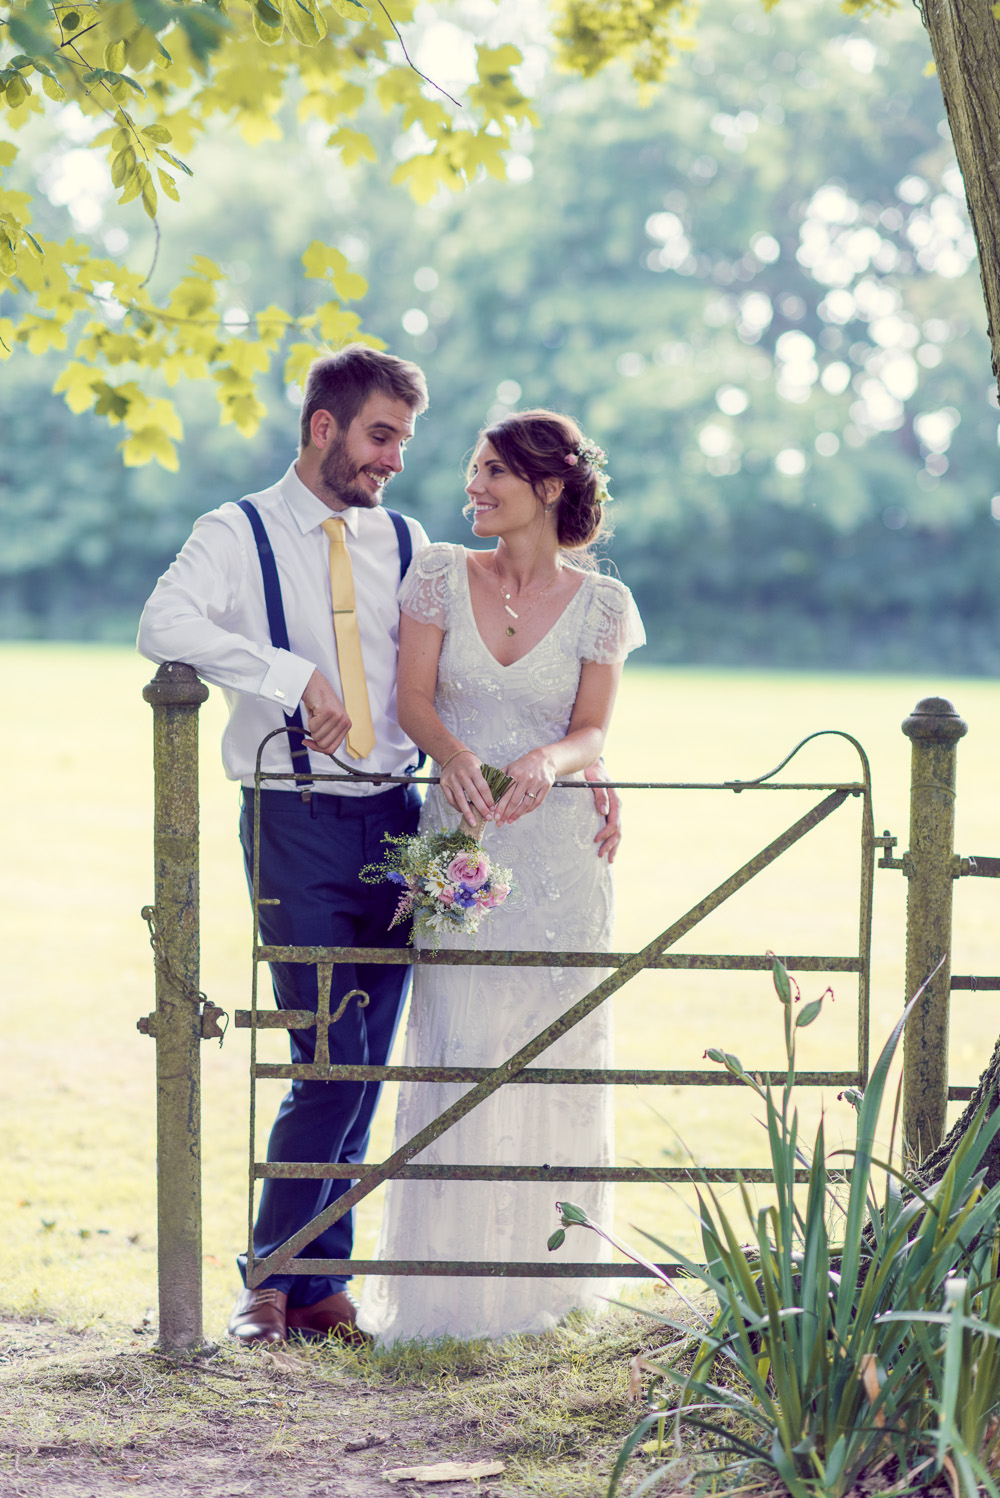 0122-dorset-natural-wedding-photographer-c-lawes-photography-_dsc6932